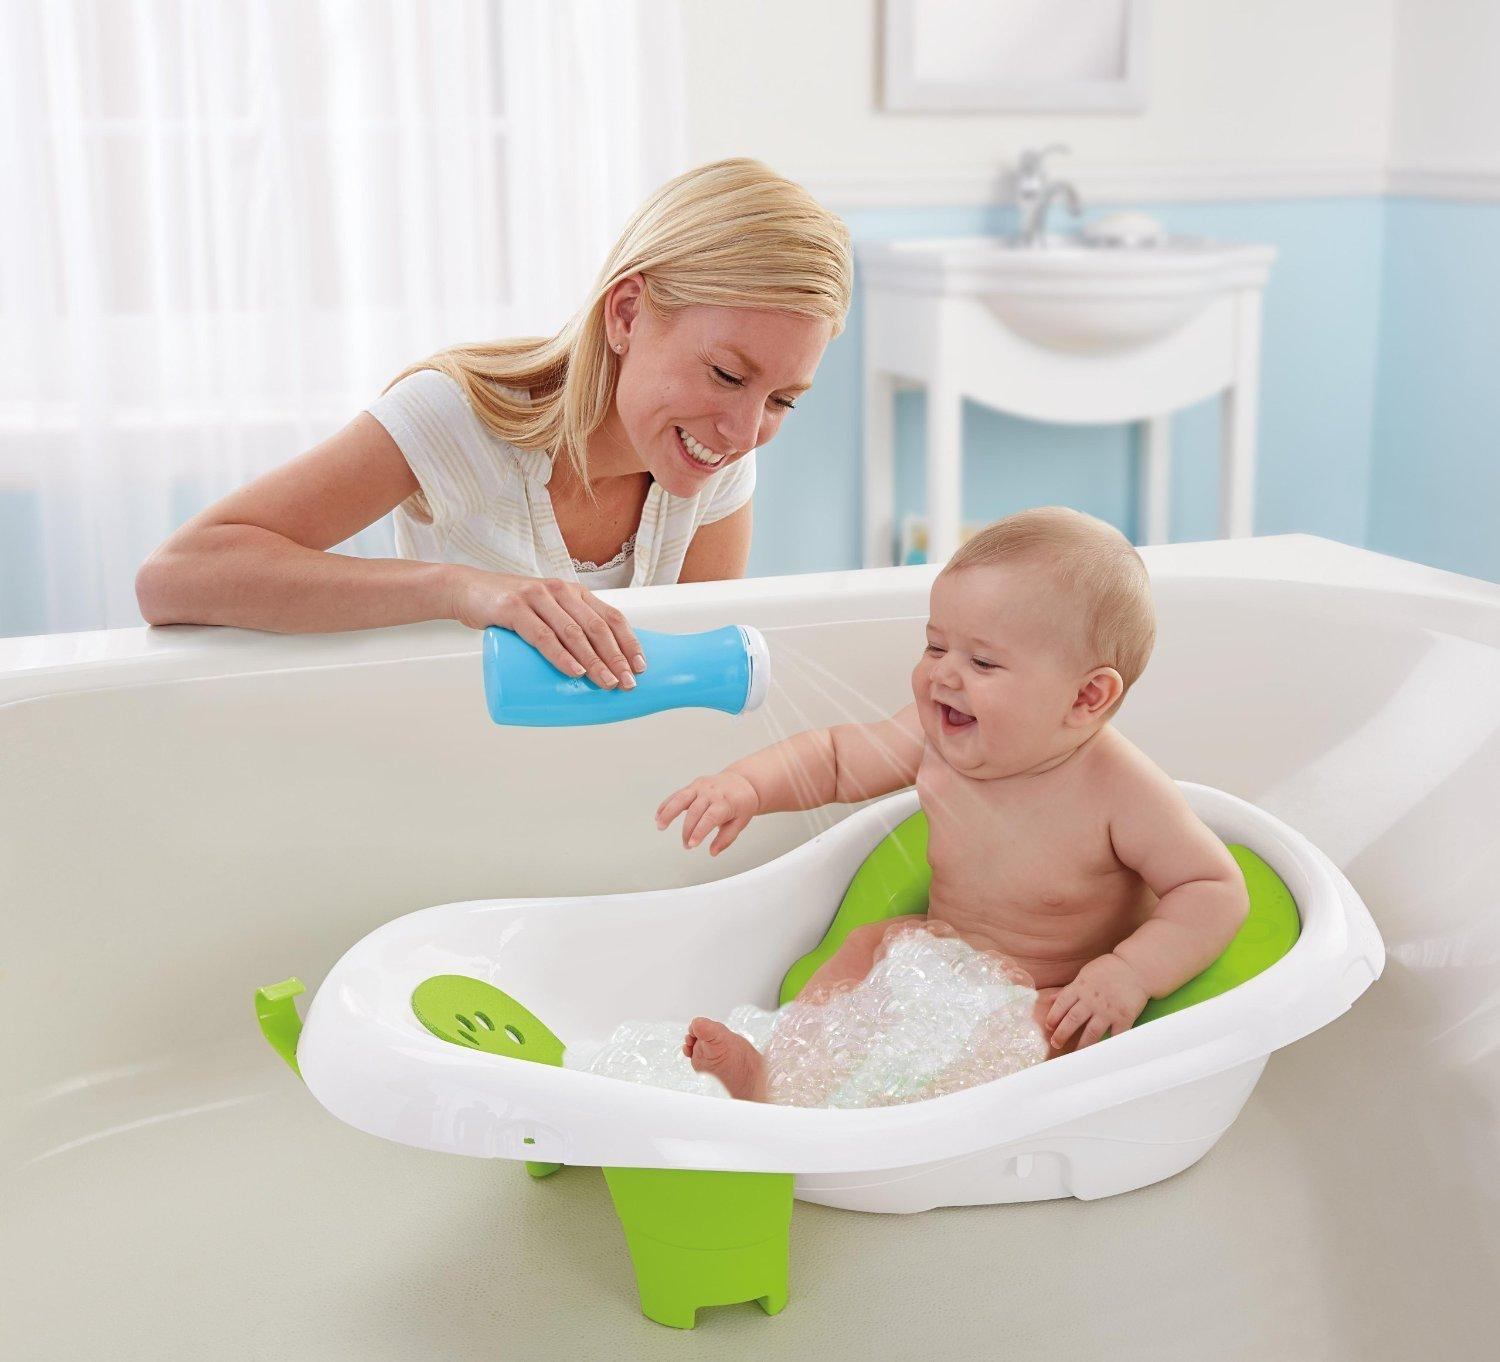 fisher price 4 in 1 sling n seat tub baby bathing seats and tubs baby. Black Bedroom Furniture Sets. Home Design Ideas